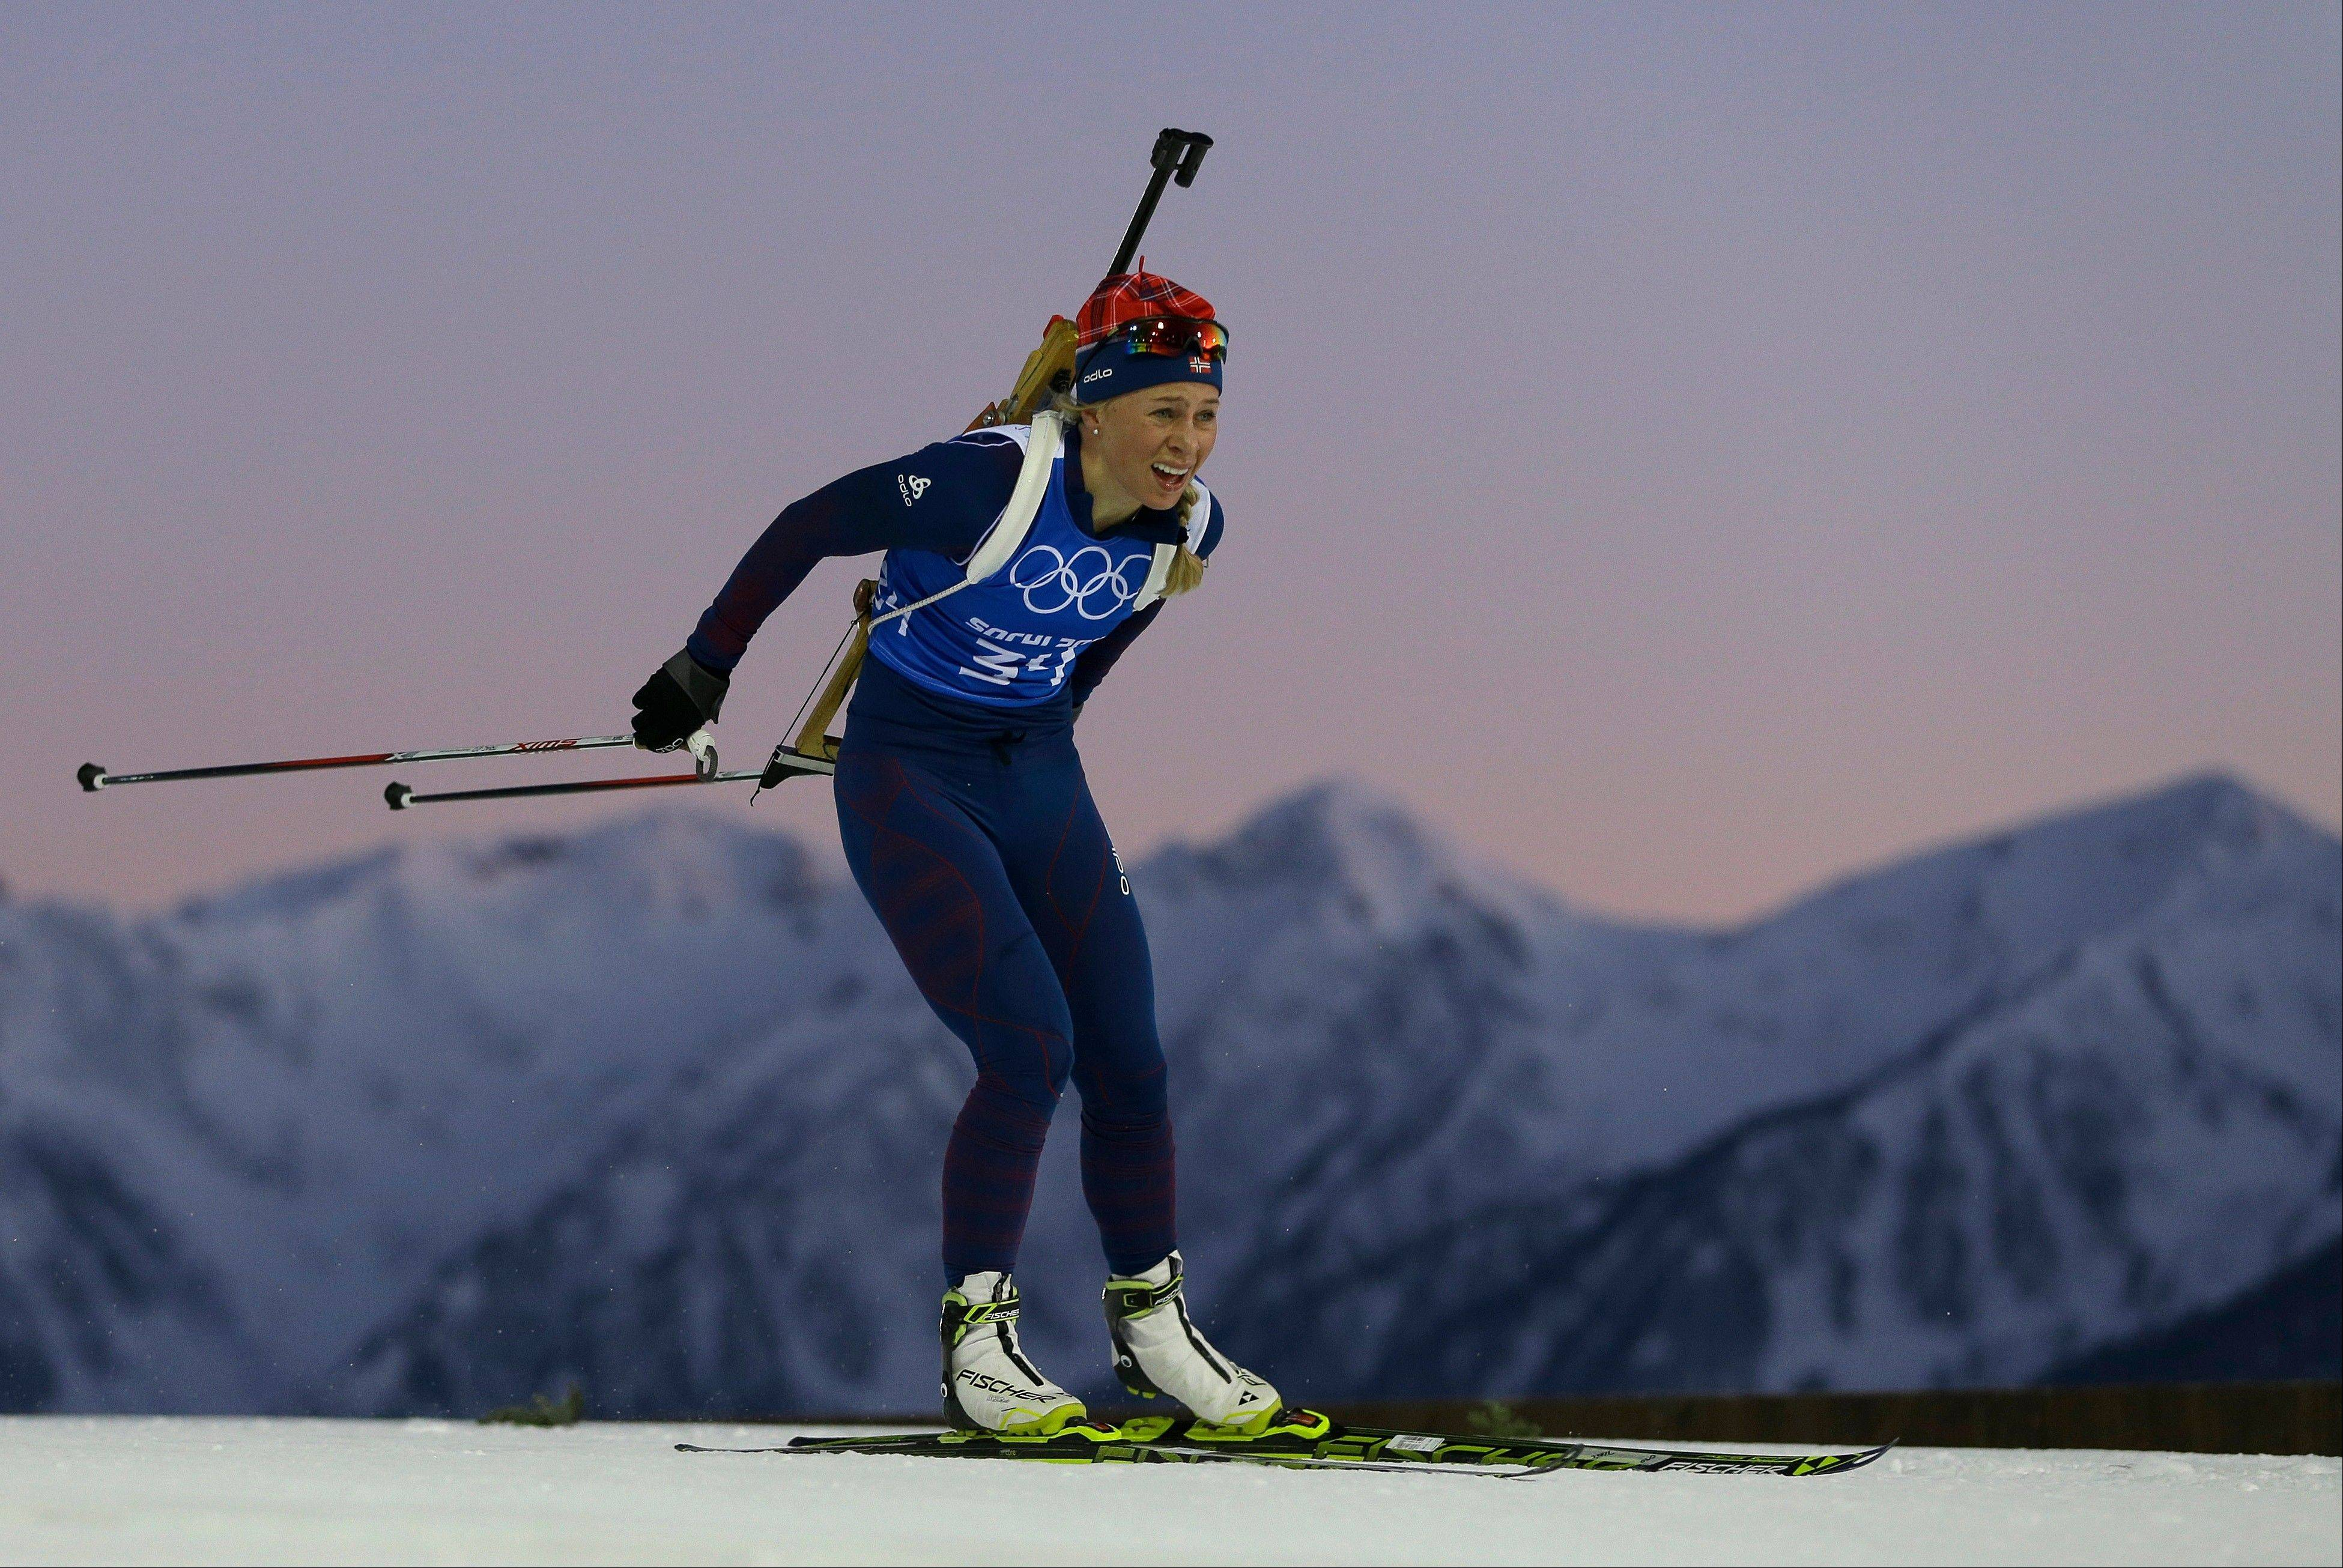 Tiril Eckhoff of Norway skis past mountain tops during a biathlon training session at the 2014 Winter Olympics, Thursday, Feb. 6, 2014, in Krasnaya Polyana, Russia.